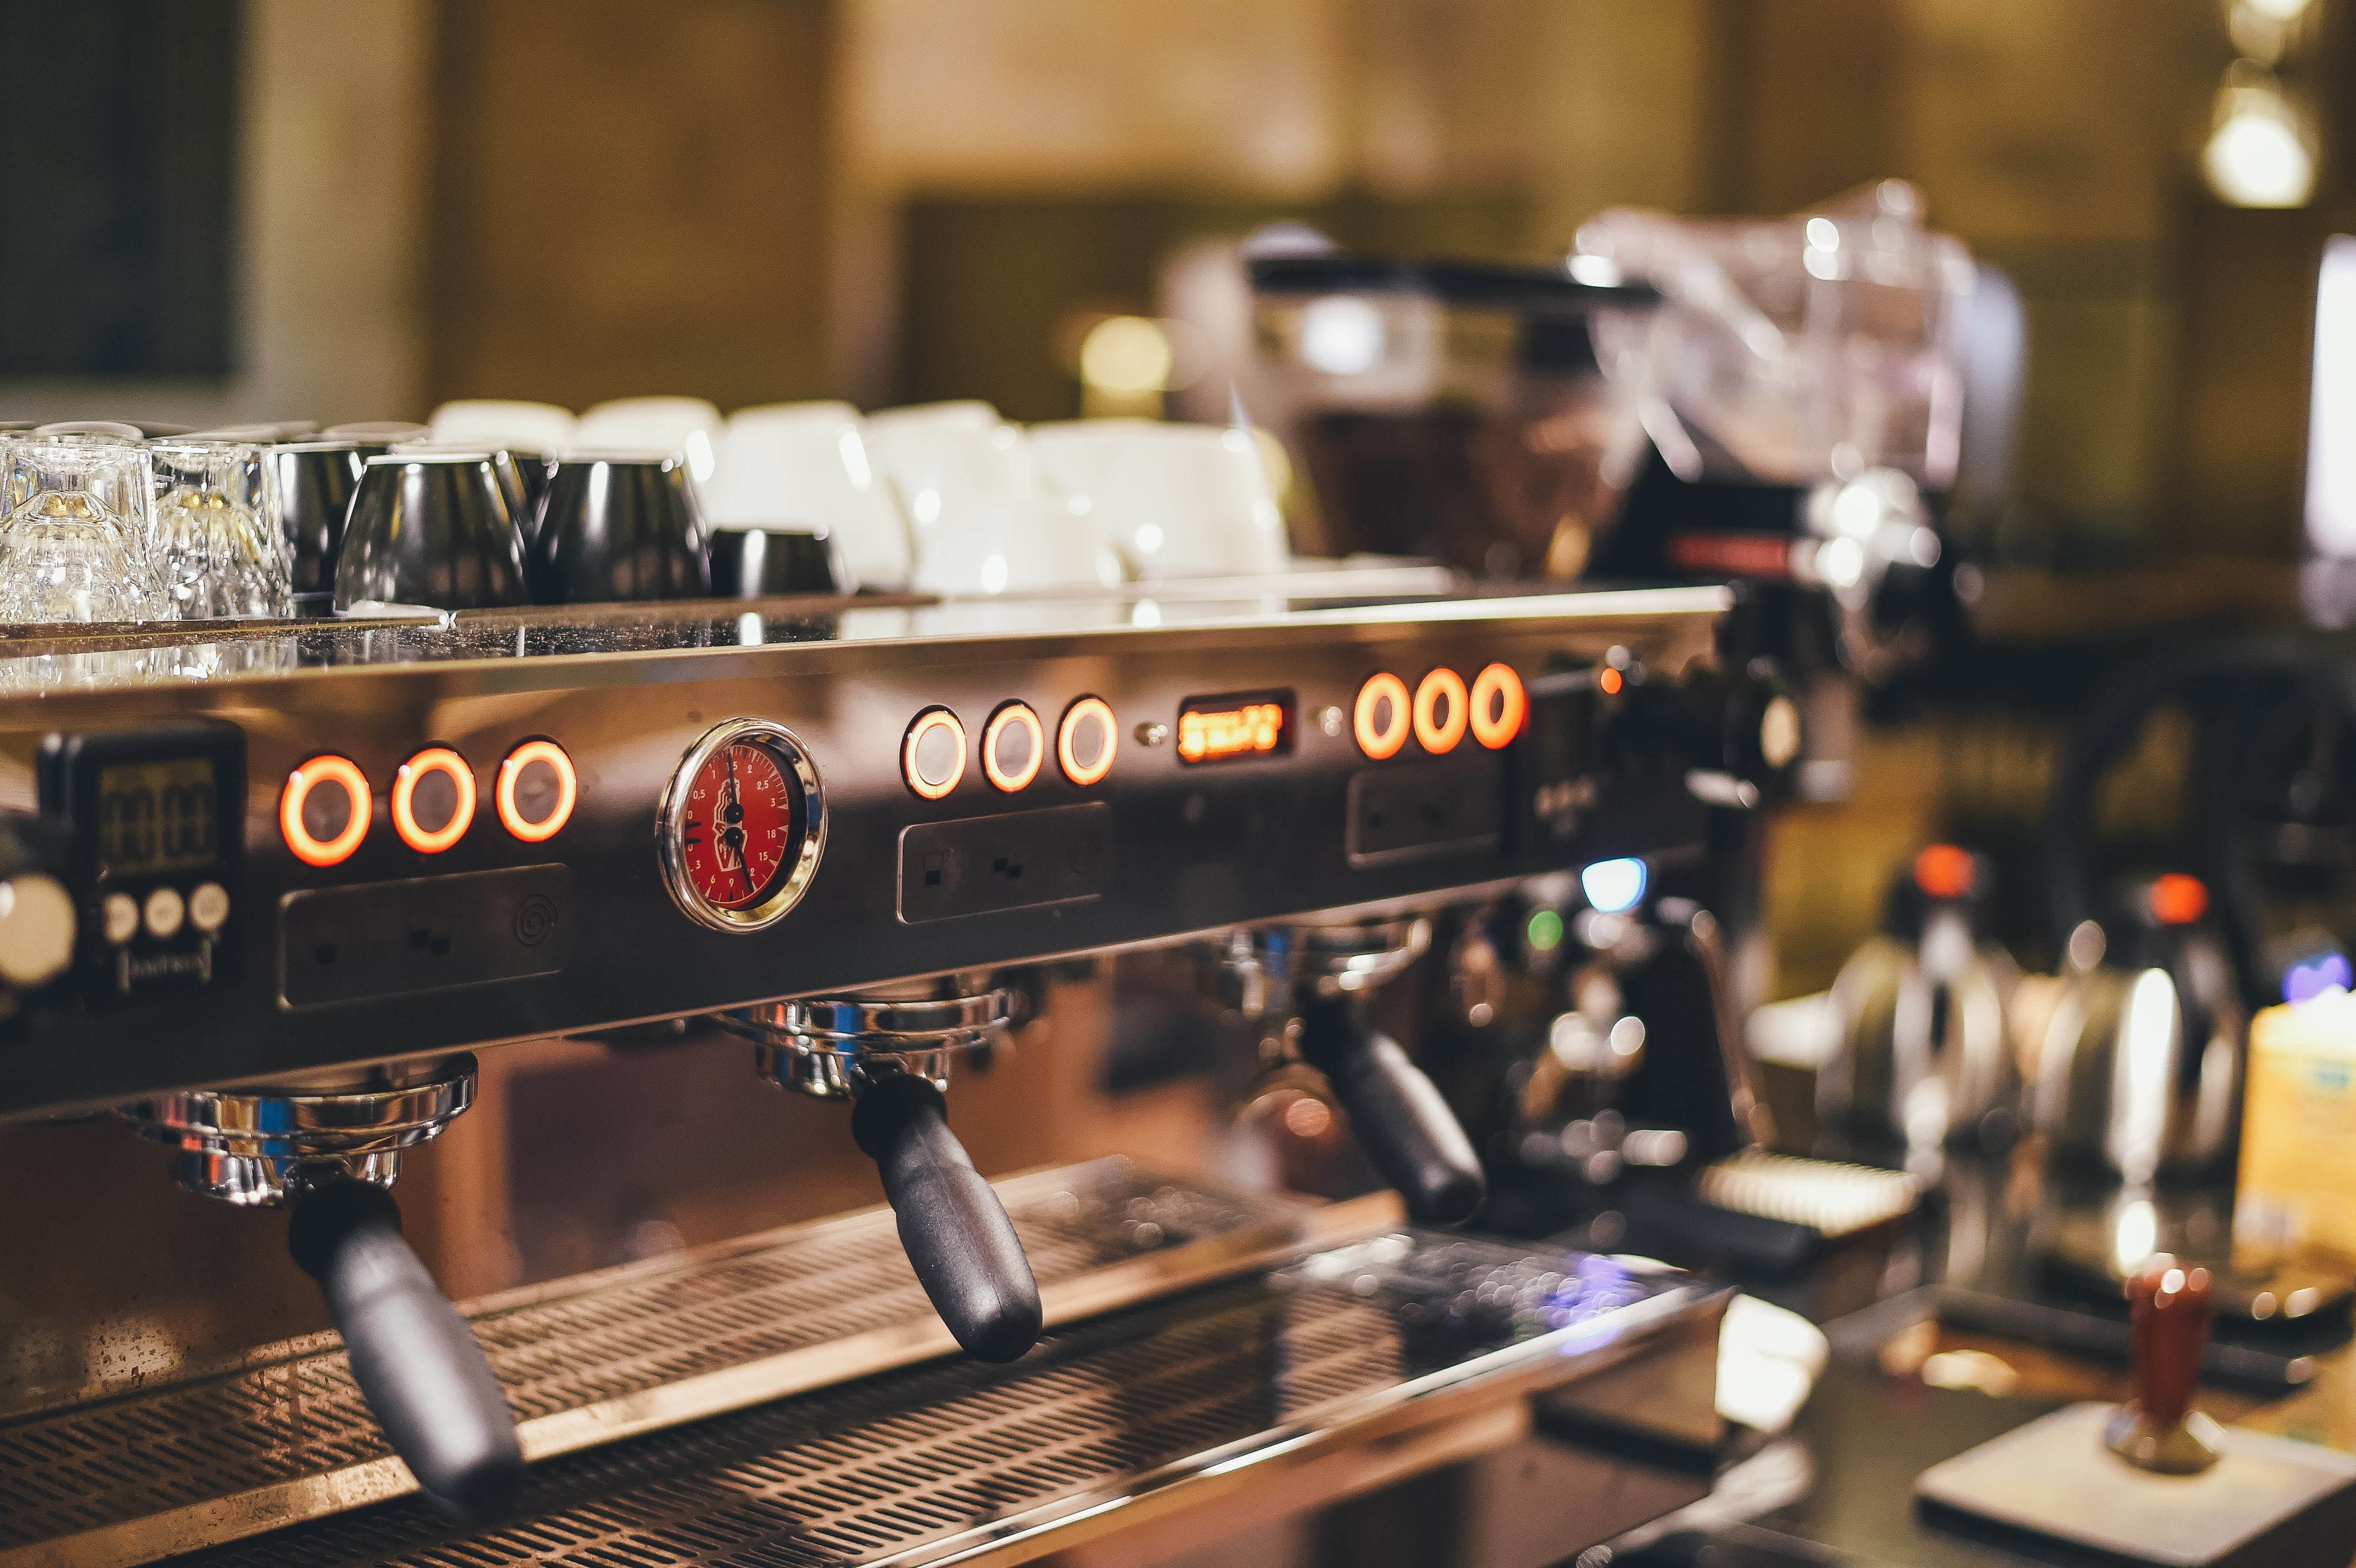 Dials and lights on a coffee machine